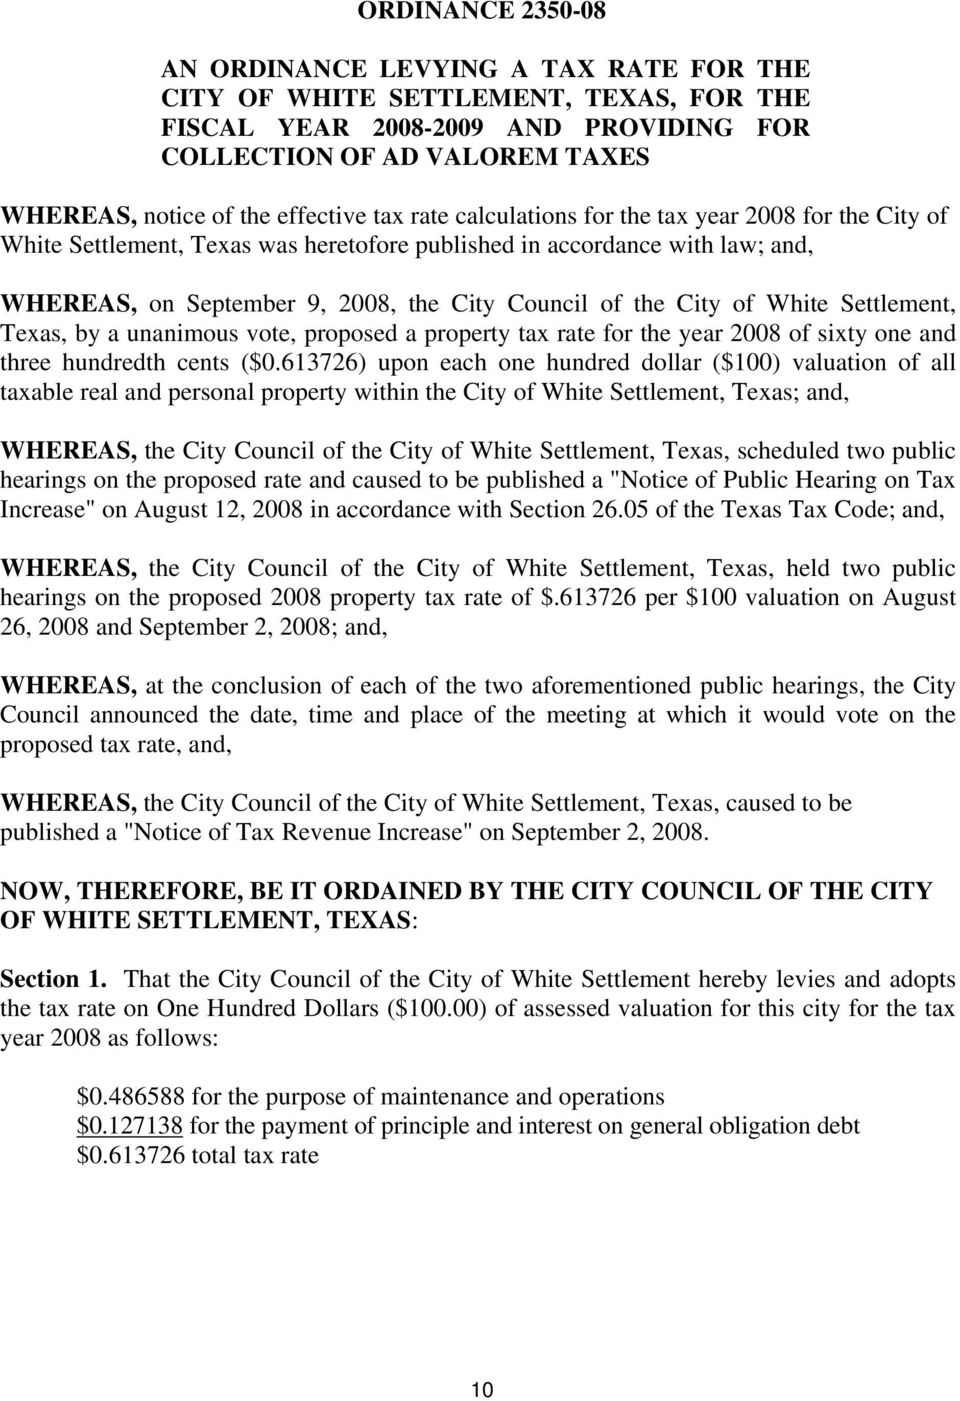 the City of White Settlement, Texas, by a unanimous vote, proposed a property tax rate for the year 2008 of sixty one and three hundredth cents ($0.